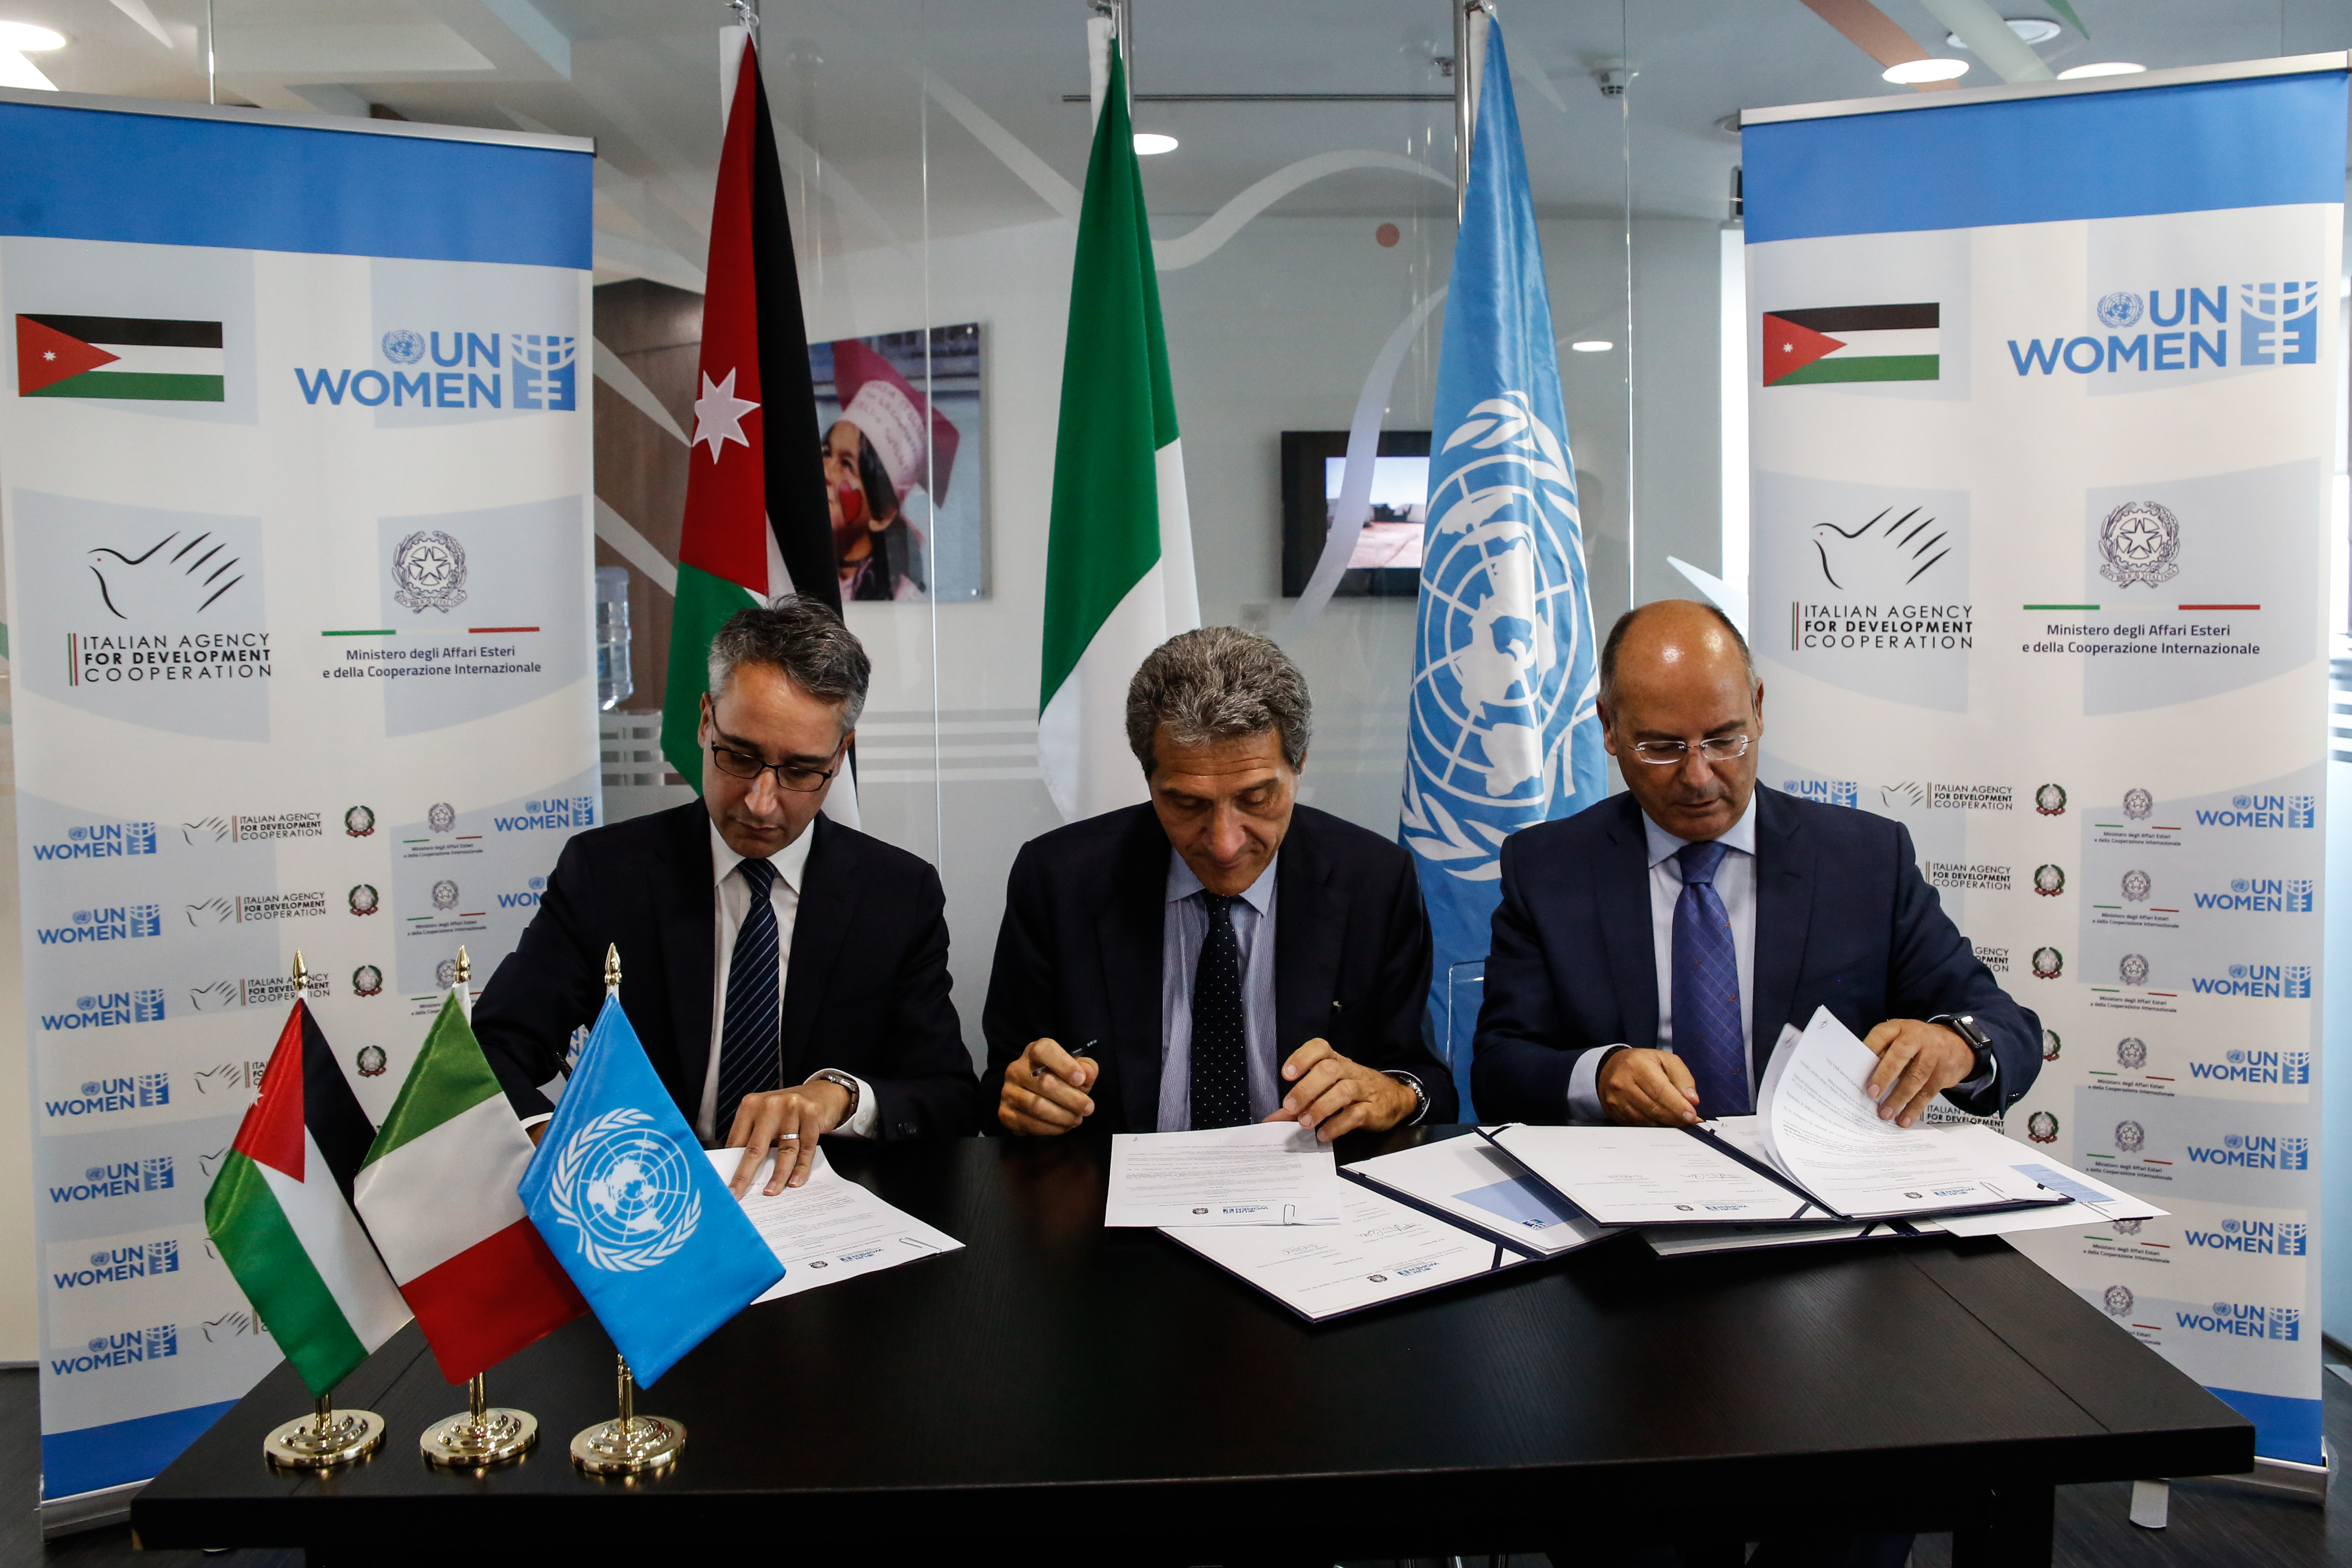 Government of Italy, UN Women announce partnership to strengthen institutional capacity on women's empowerment